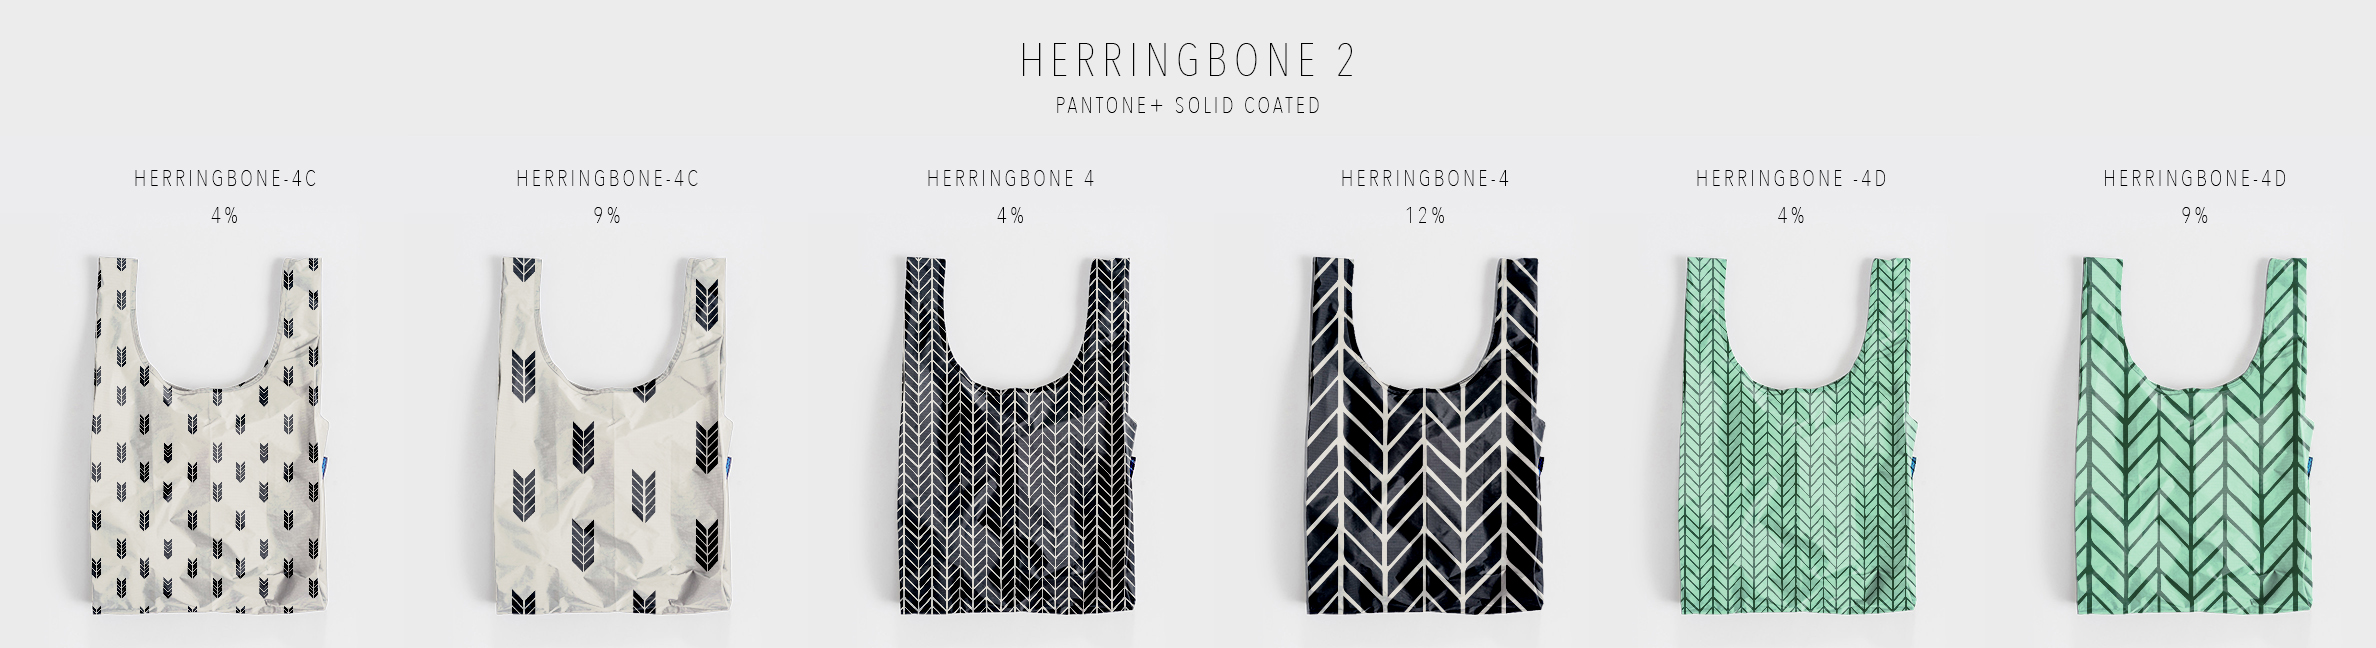 HERRINGBONE OPTIONS2small.jpg